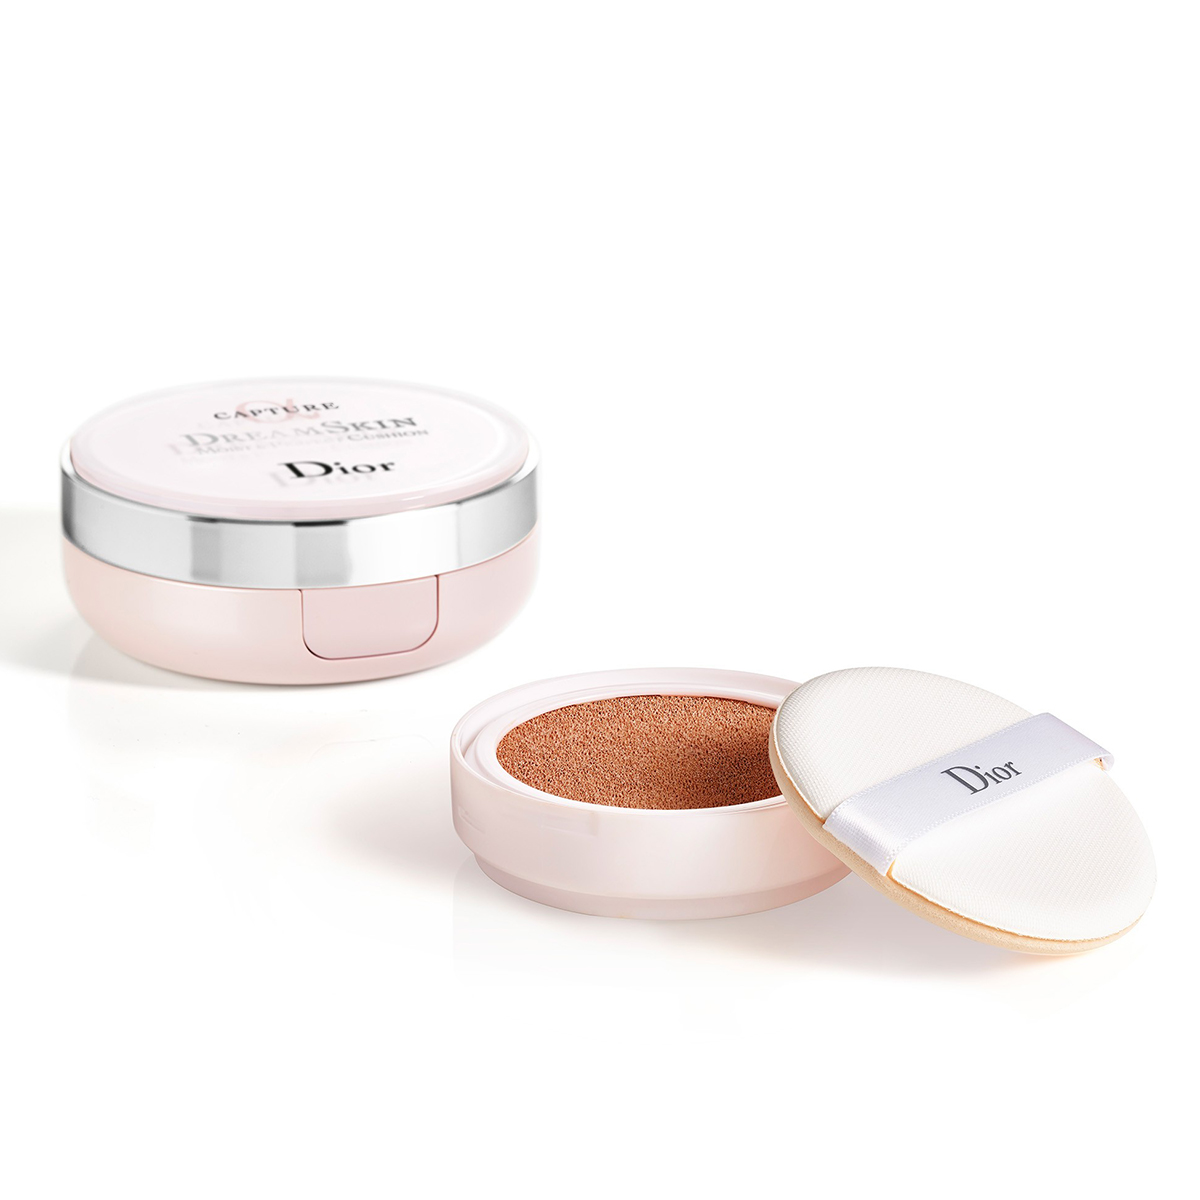 Dior capture dreamskin moist perfect cushion spf50 030 15g